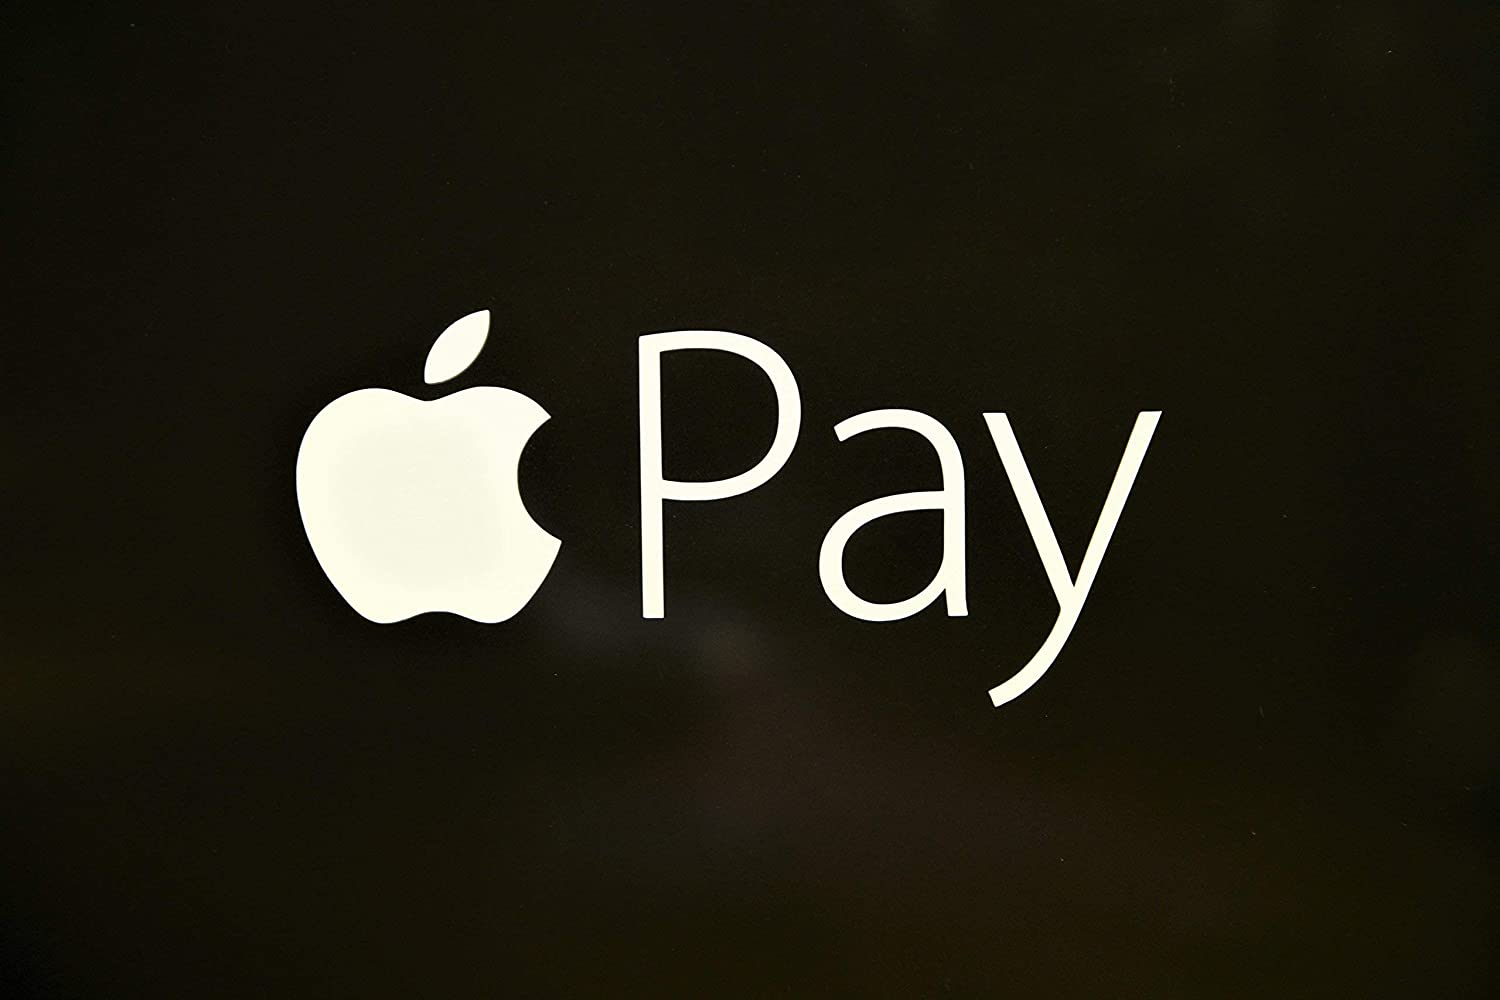 Apple Pay 3pc Decal Vinyl Sticker for Business, Studio, etc. Comes in 2 colors. Select from the option menu.